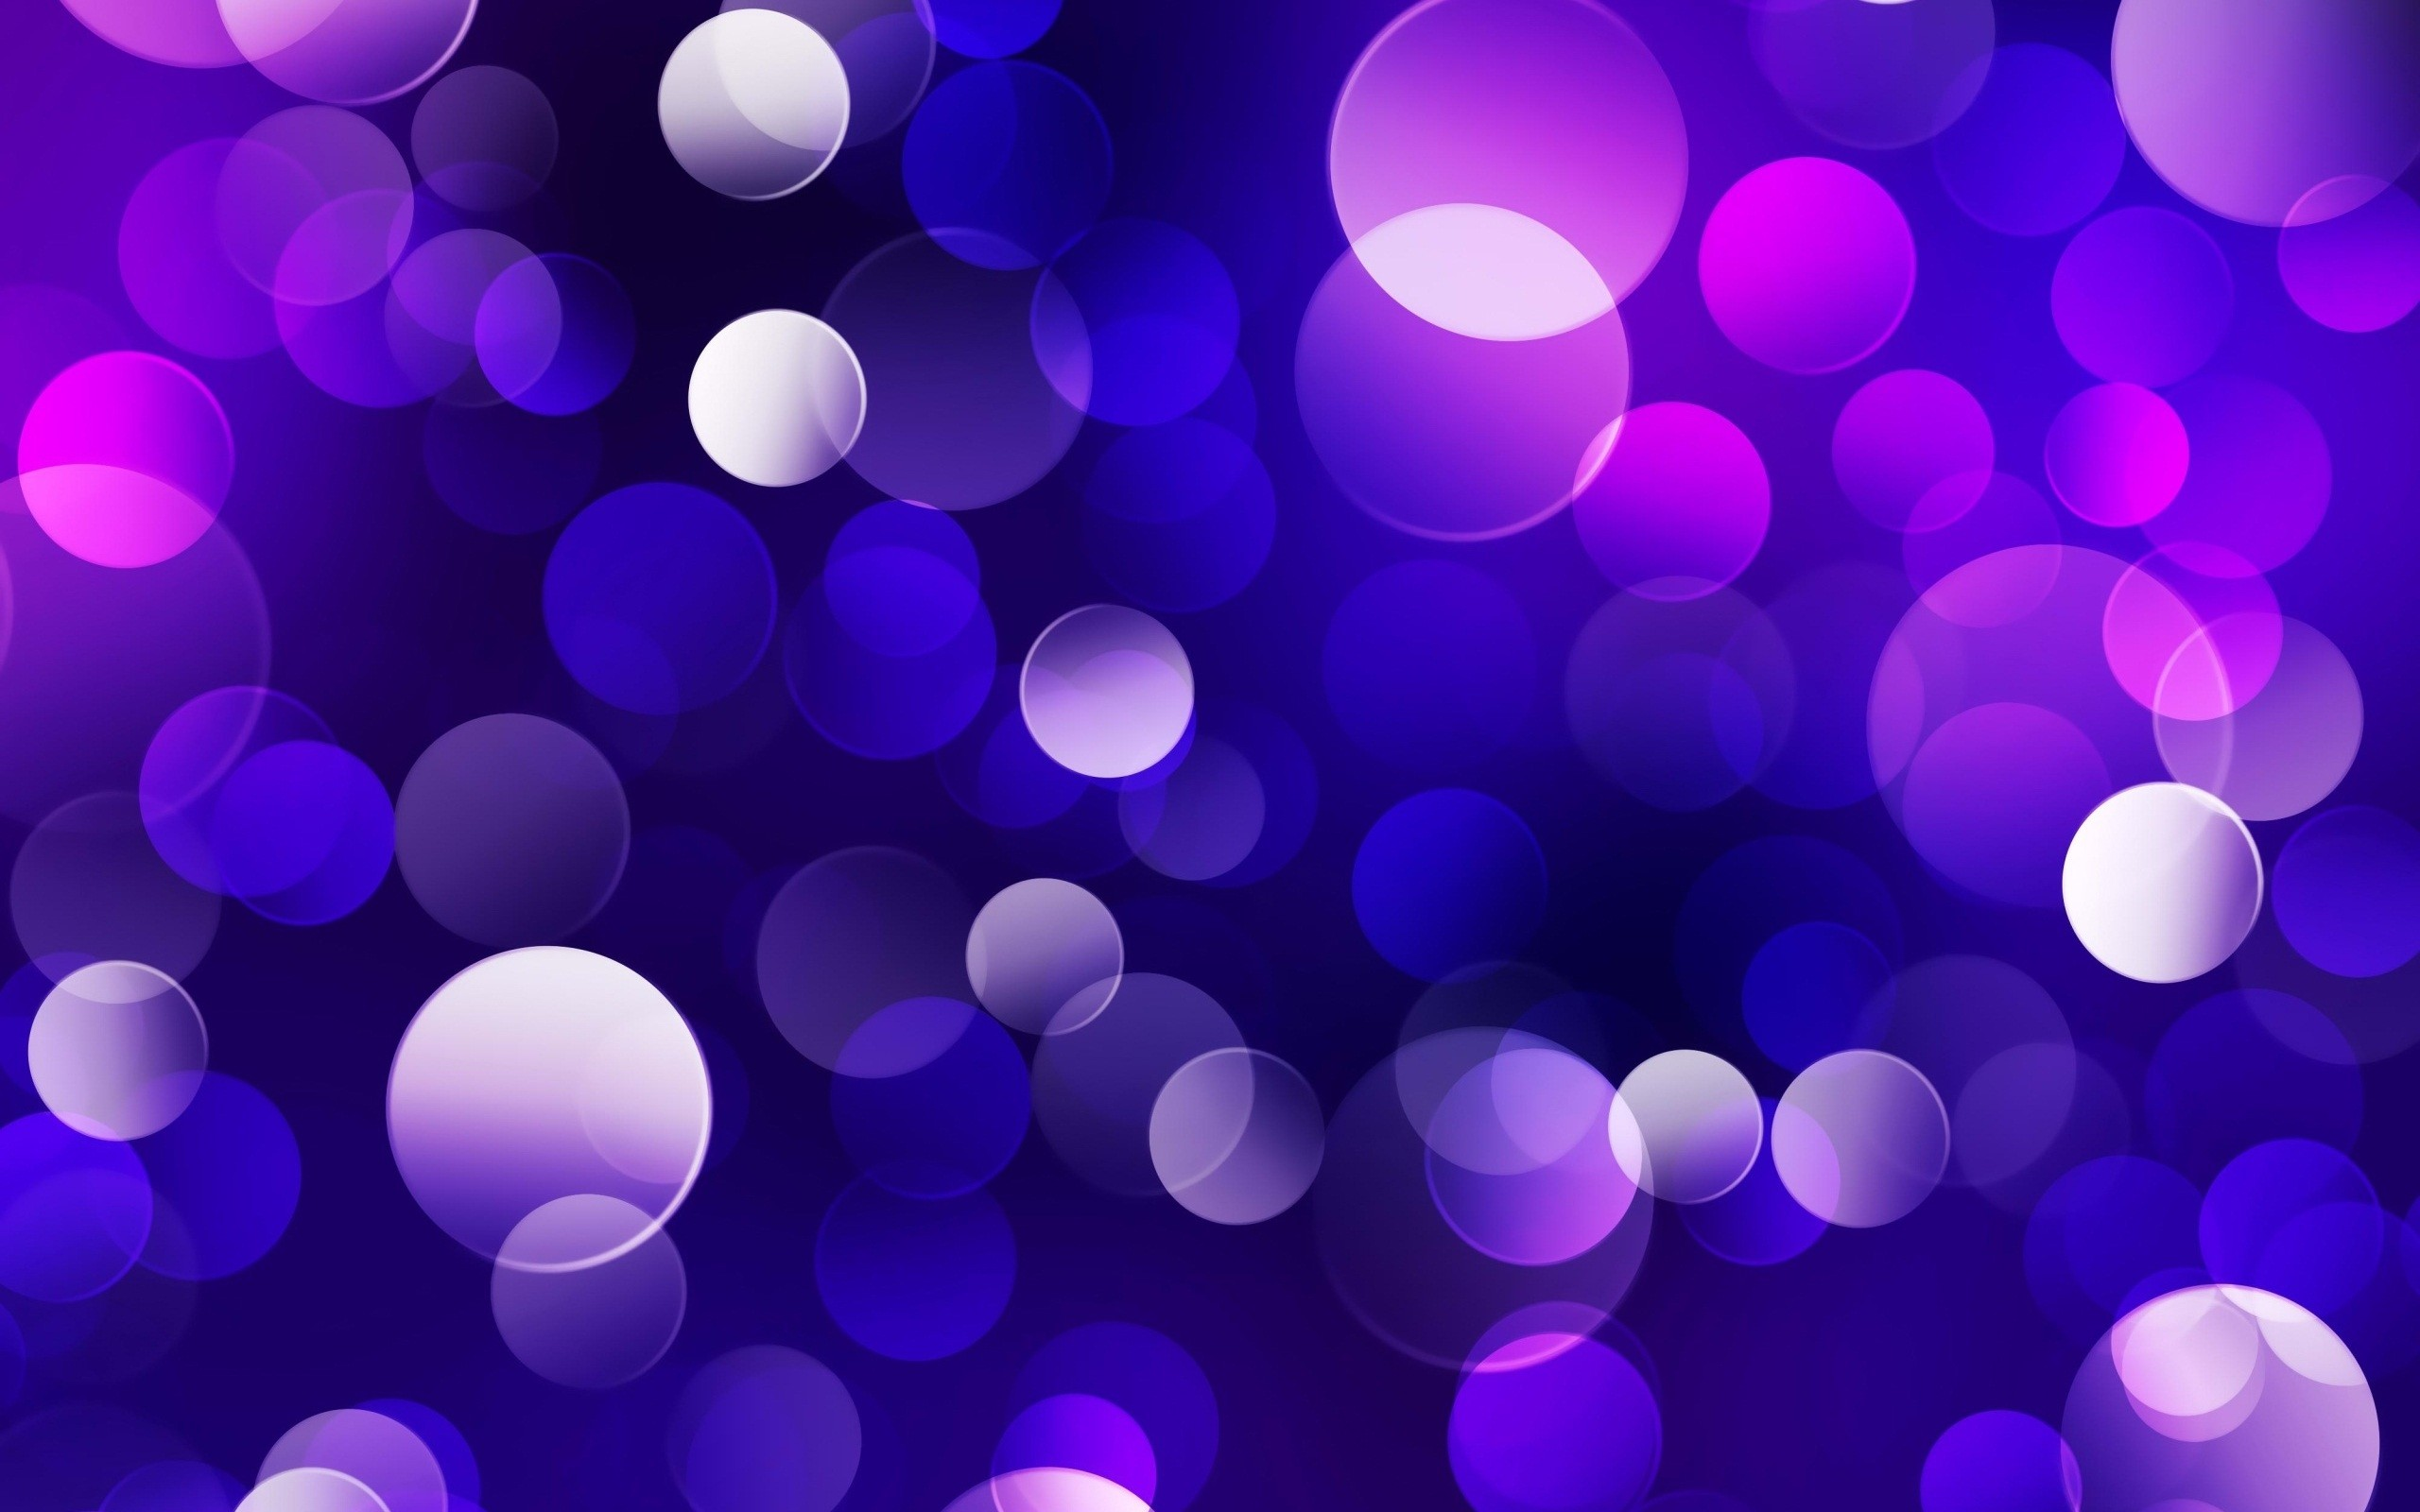 Purple Background 18533 px ~ HDWallSource.